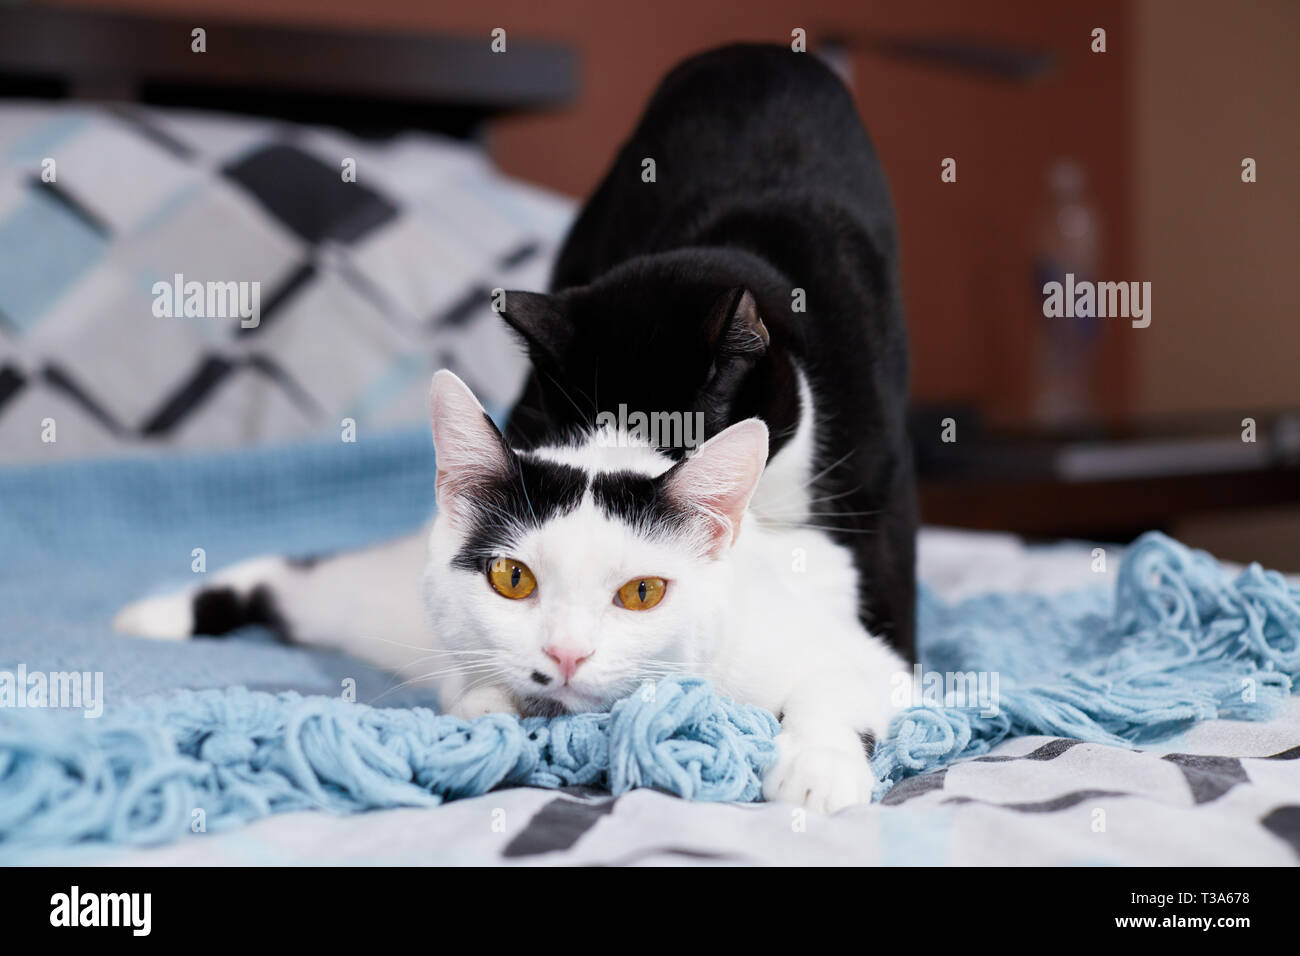 Two young cats are playing and wrestling with each other - Stock Image